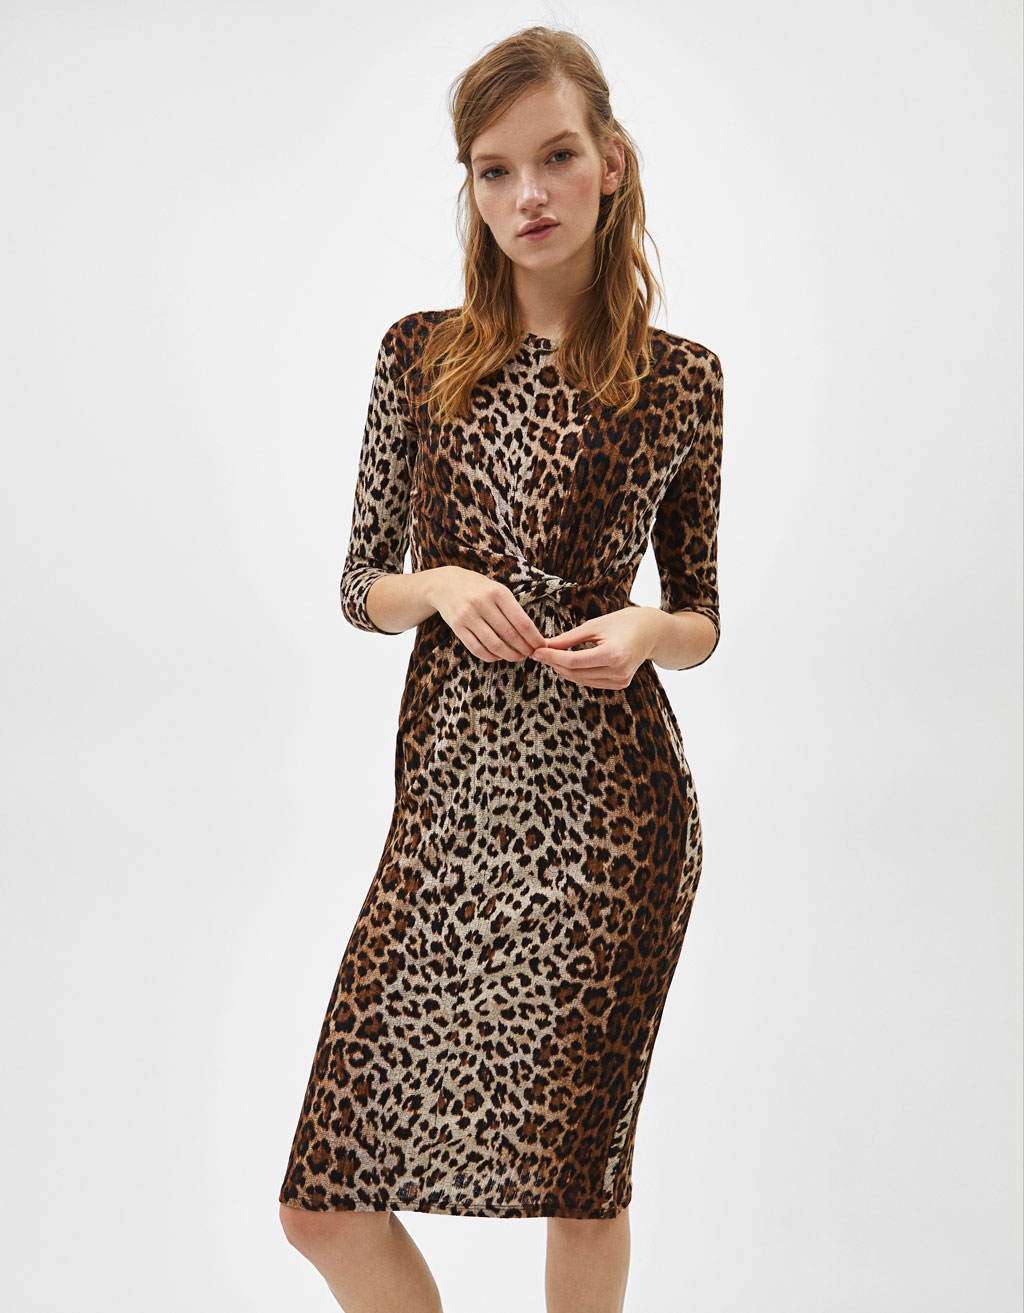 Vestido con estampado animal print